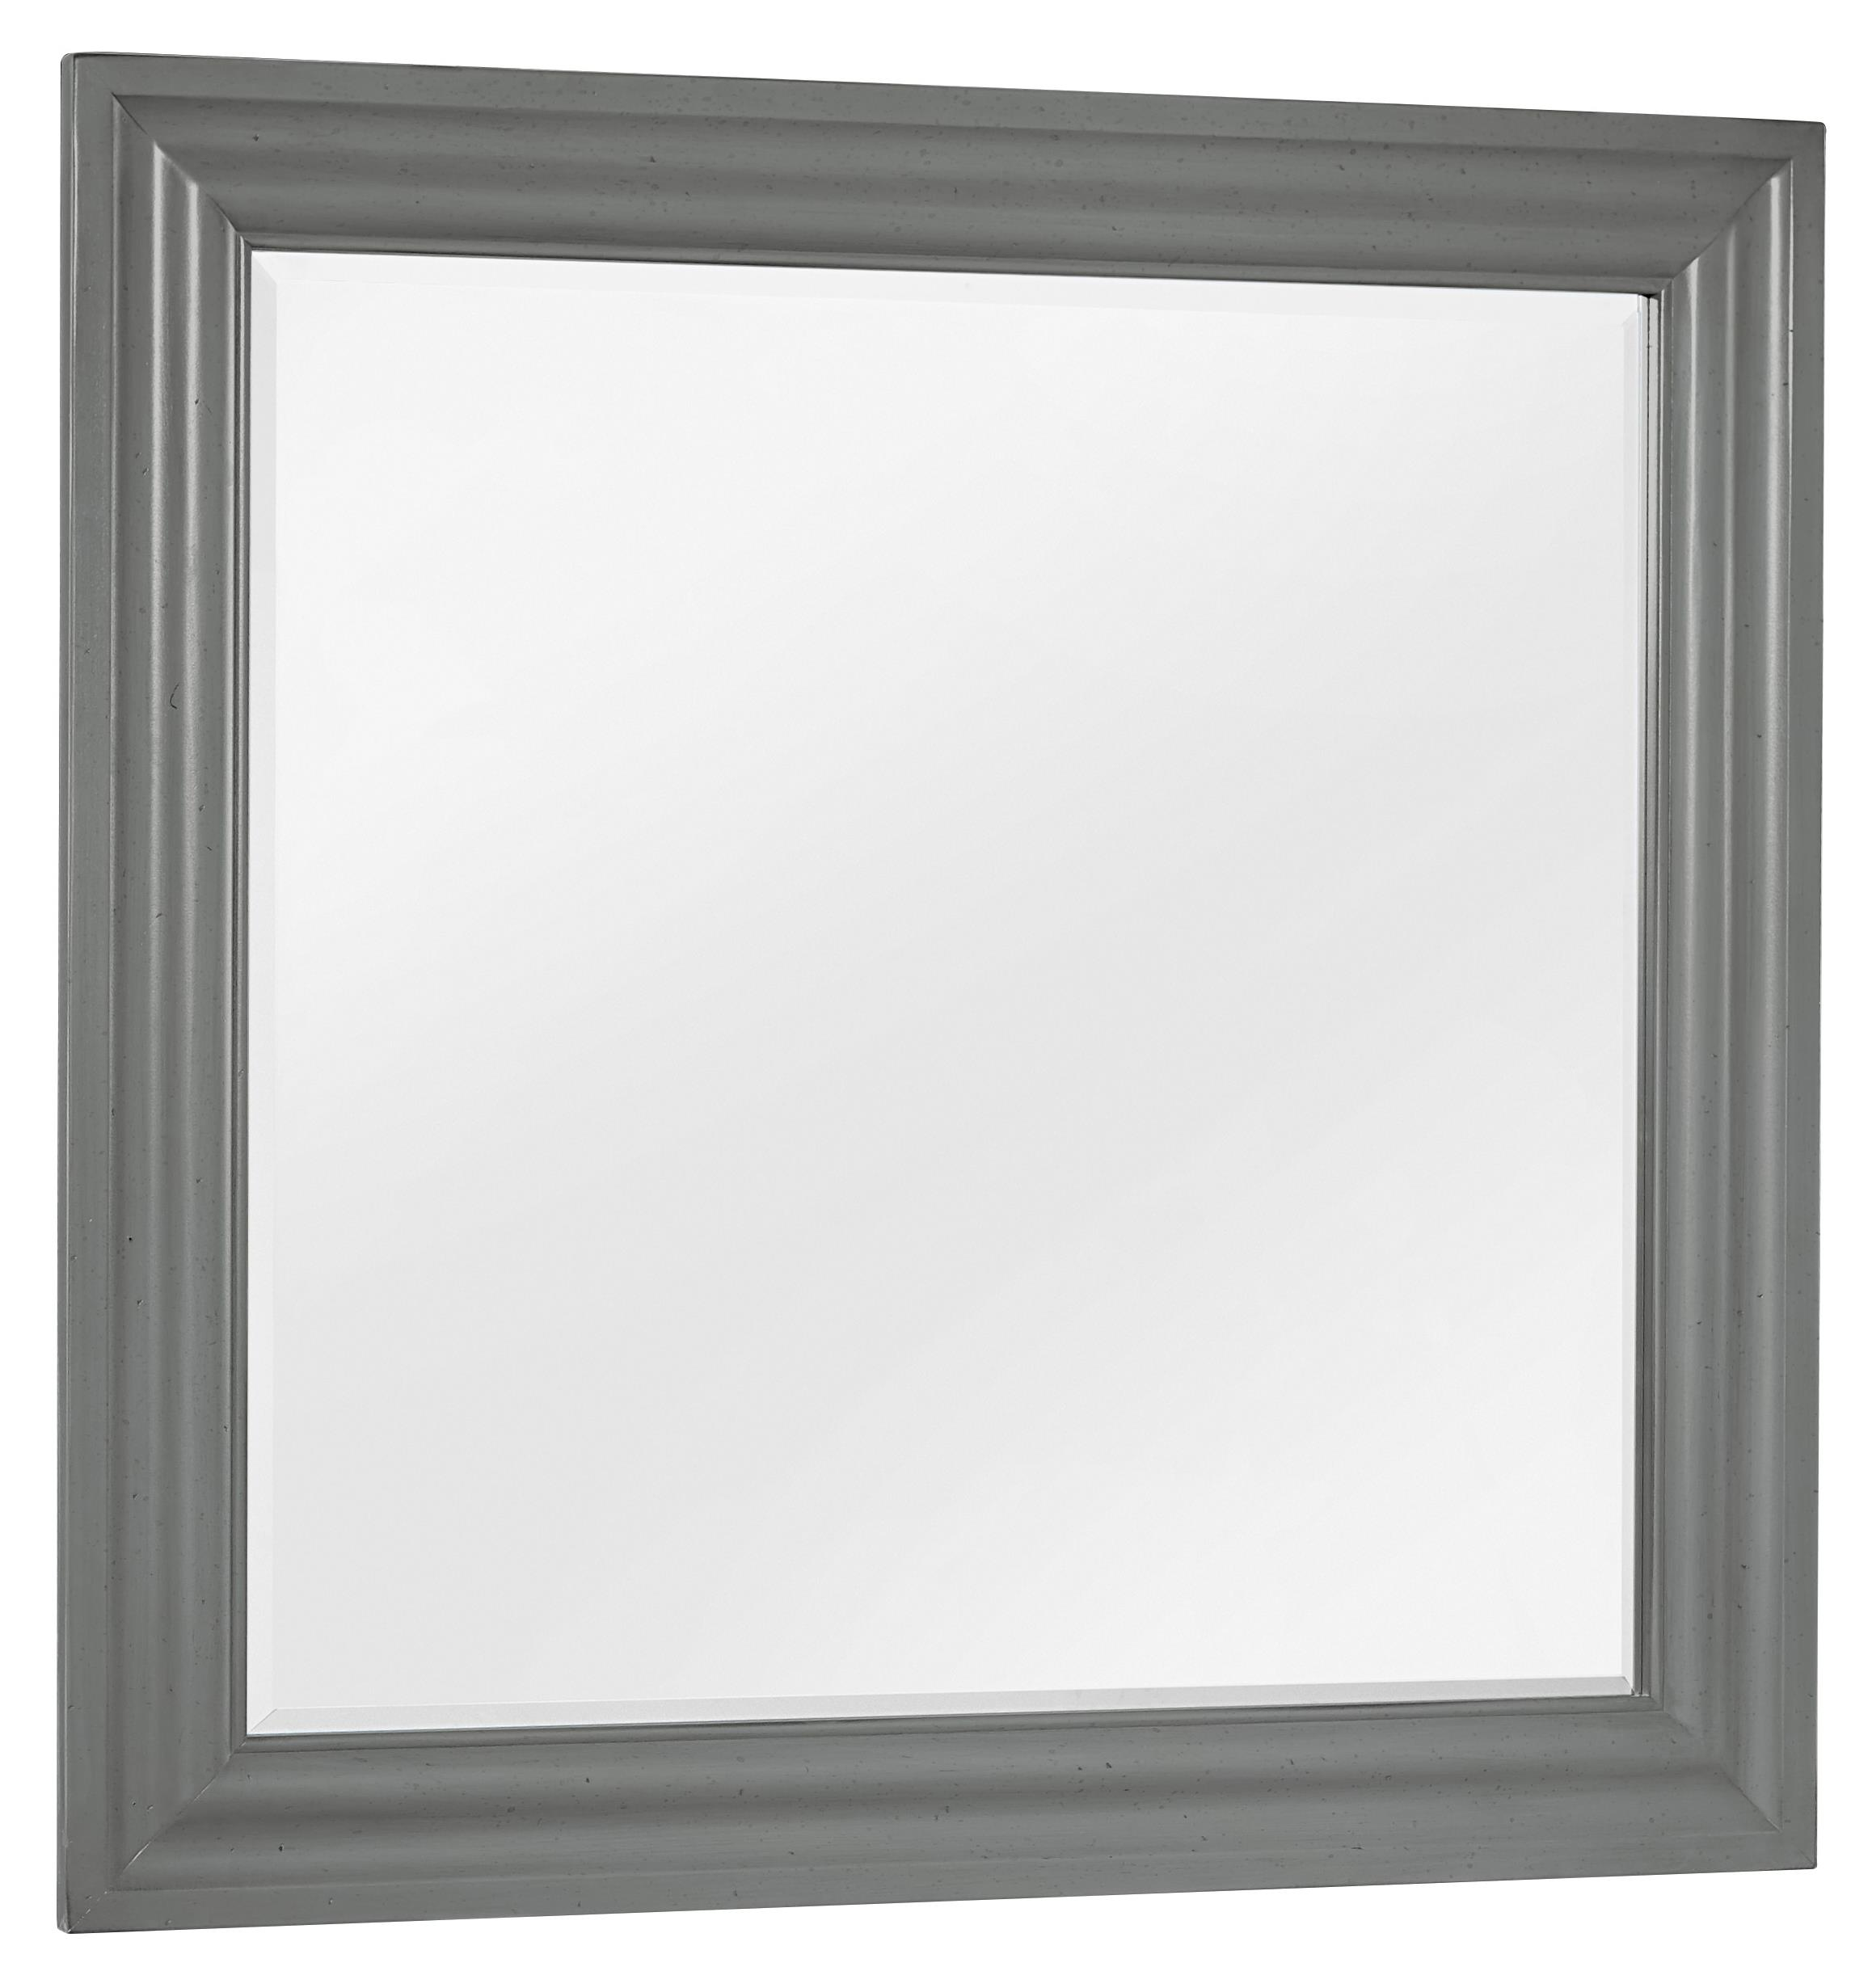 Vaughan Bassett French Market Landscape Mirror - Item Number: 381-446